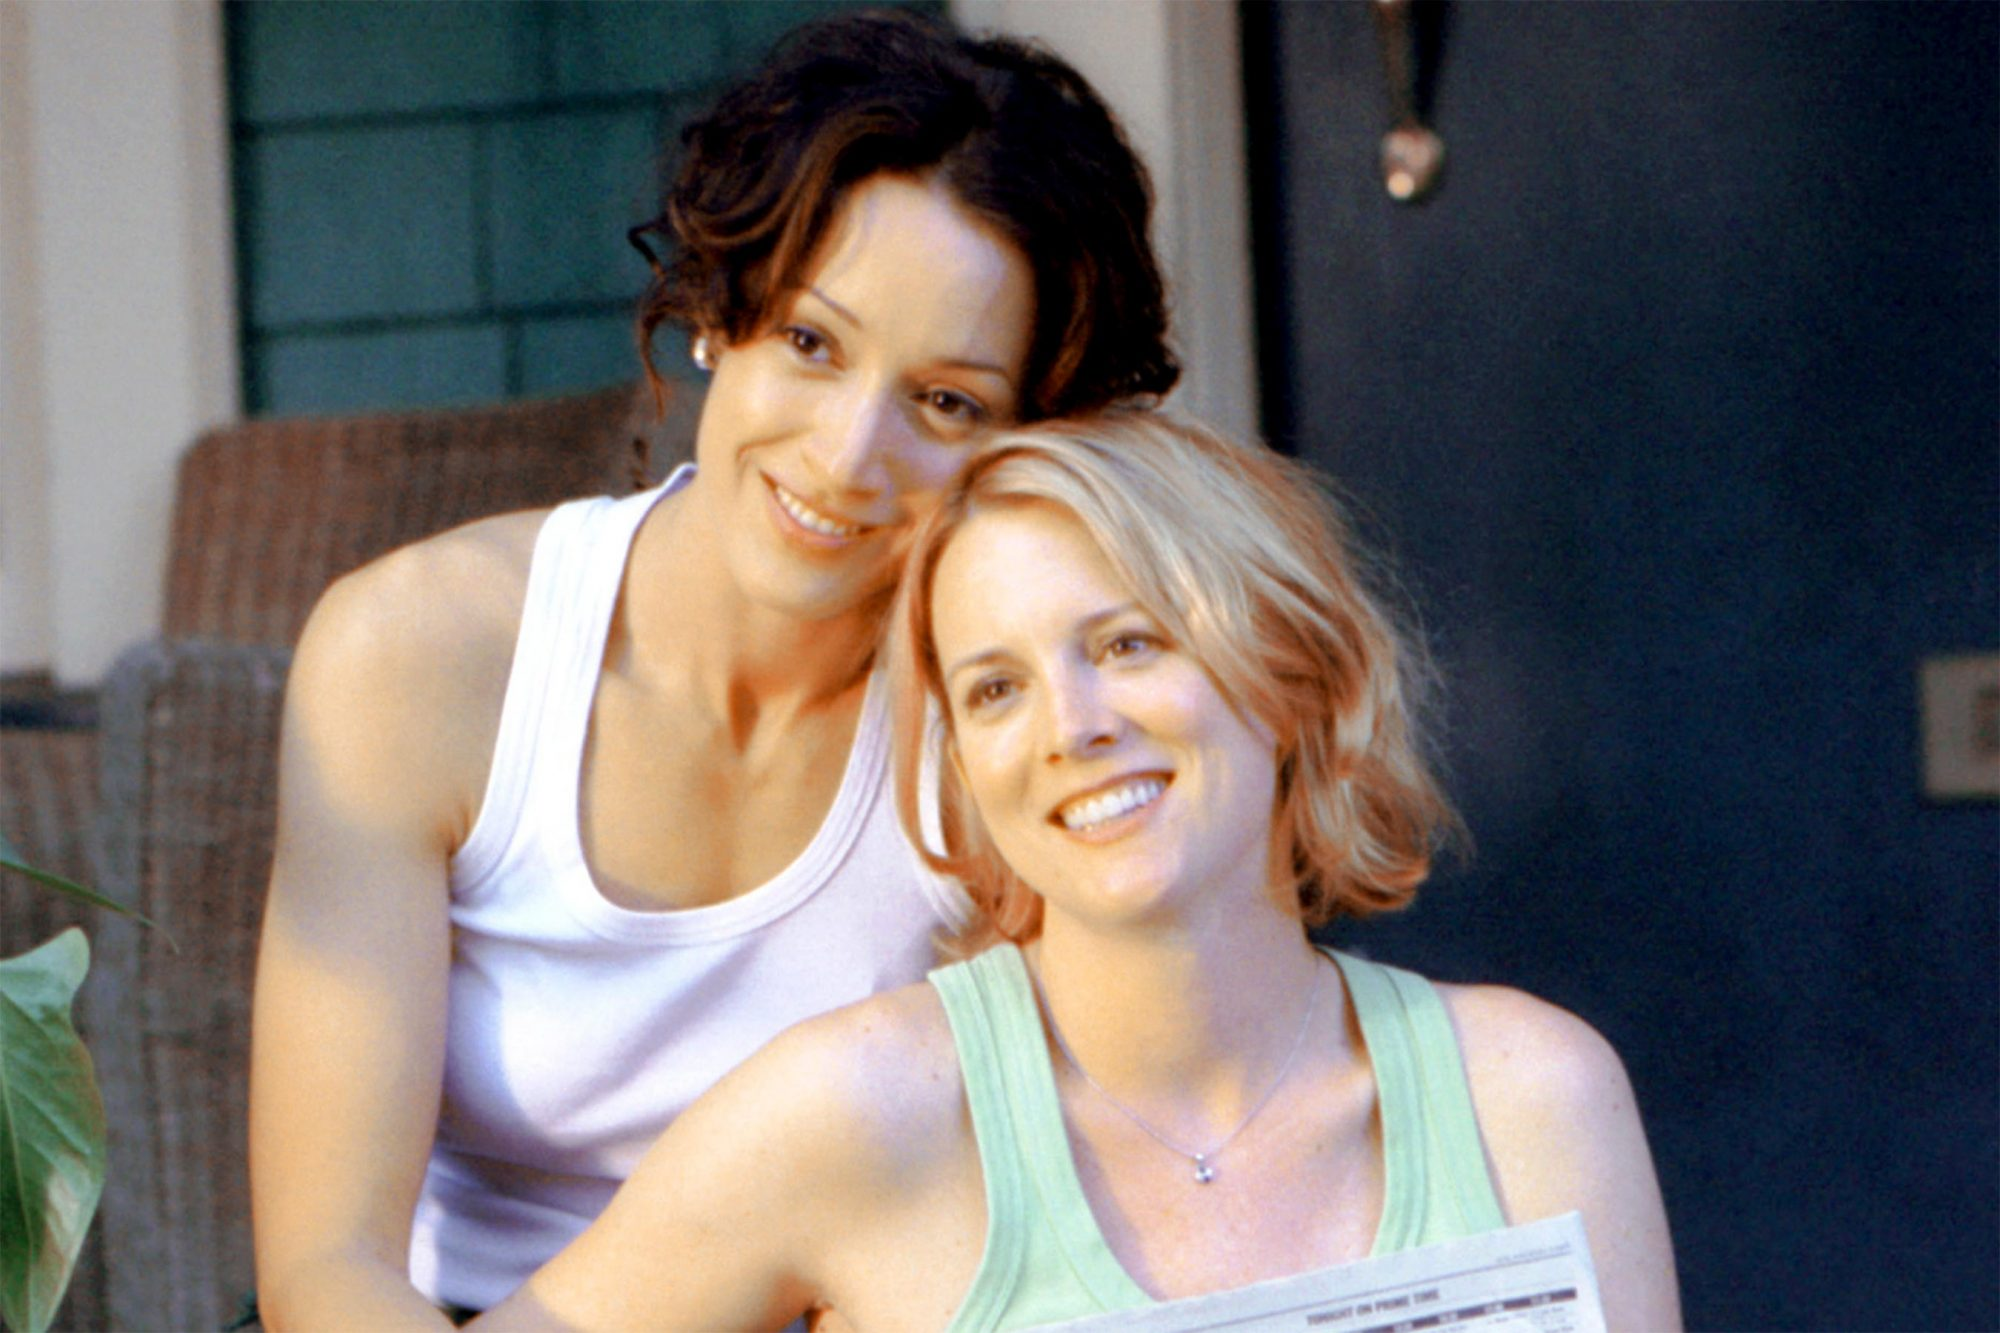 THE L WORD, Jennifer Beals, Laurel Holloman, (Season 1), 2004-09, © SHOWTIME / Courtesy: Everett Collection